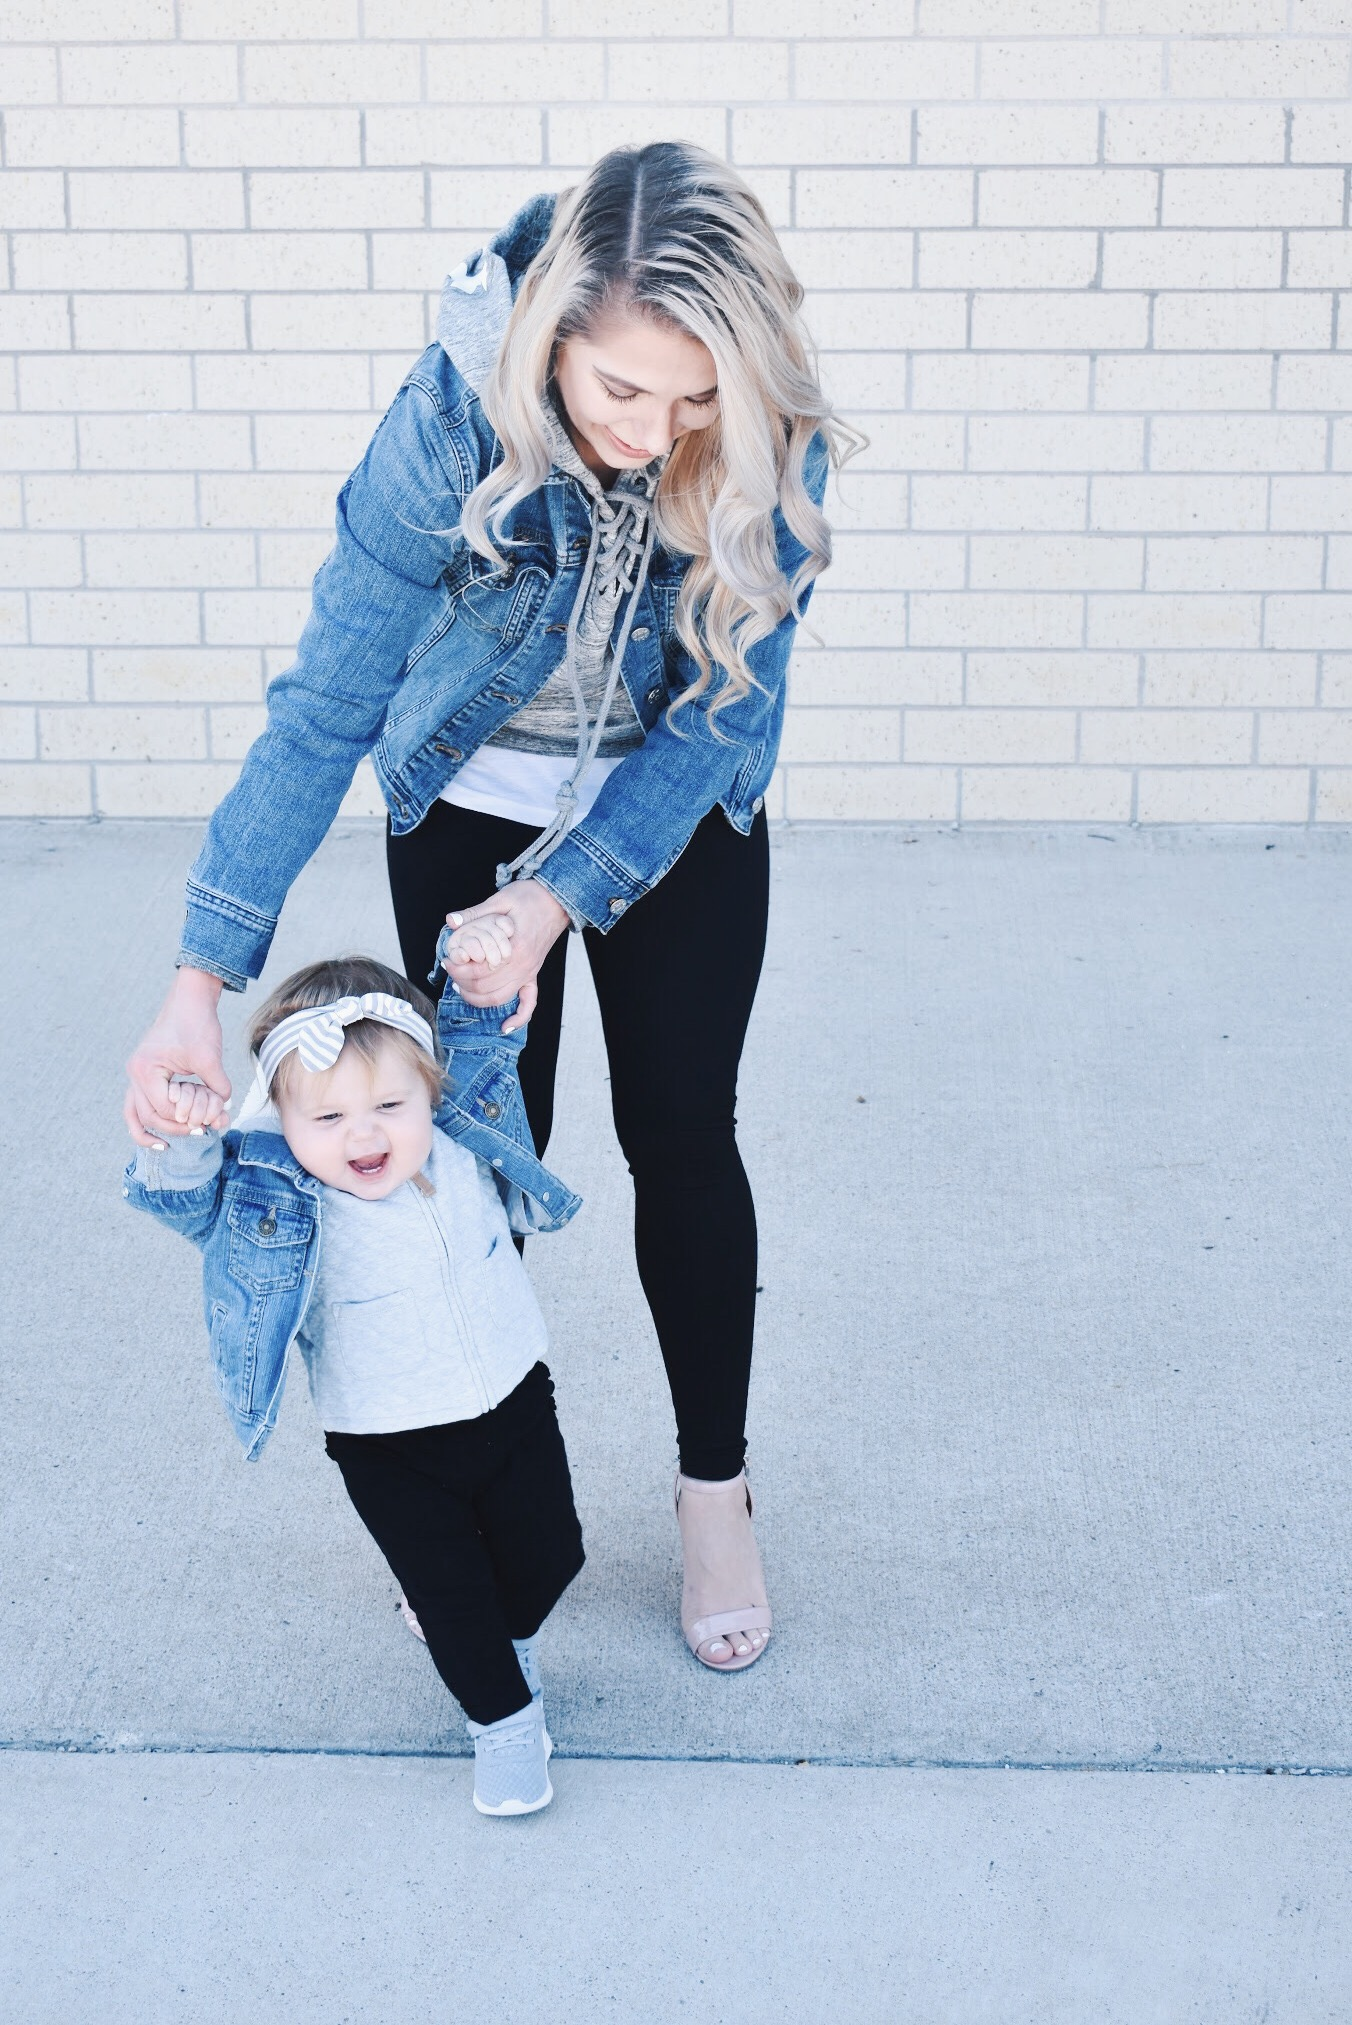 Mommy and Me Matching Outfits - Mom and Baby Girl Matching Outfits - Here's some of the best Mommy and Me Outfit Ideas on the Internet! This casual Mommy and Me style jean jacket over hoodie look can work for a baby girl or baby boy and is easy to pull together with items you both probably already have in your closets. Jean jacket outfit ideas, Hoodie outfit ideas, Casual Fall Style, Casual Fall Outfit. #LikeTKit #Fashion #MommyandMe #Twinning